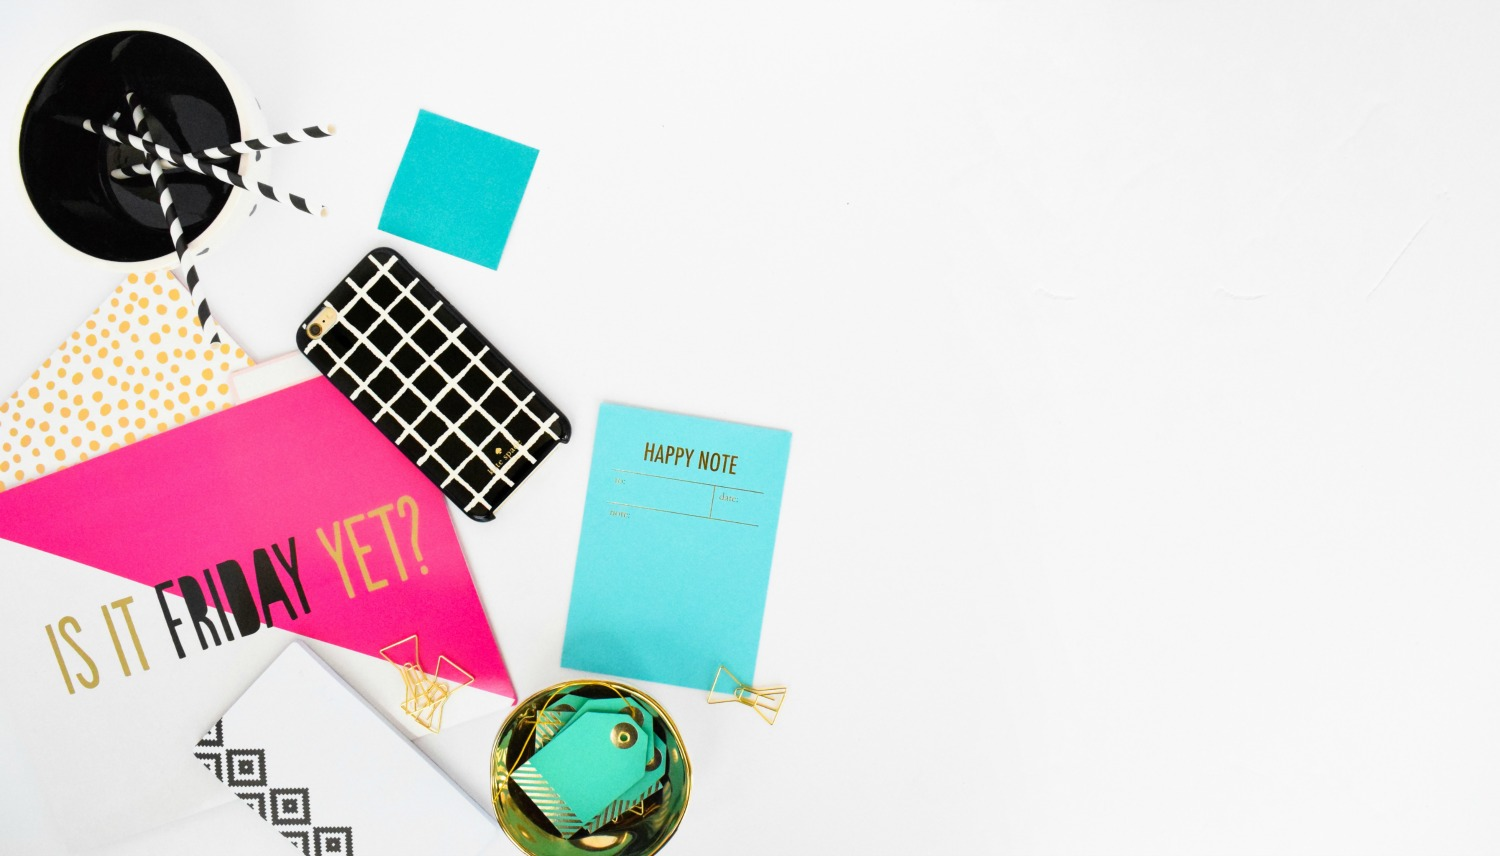 white backgrounds in product photography